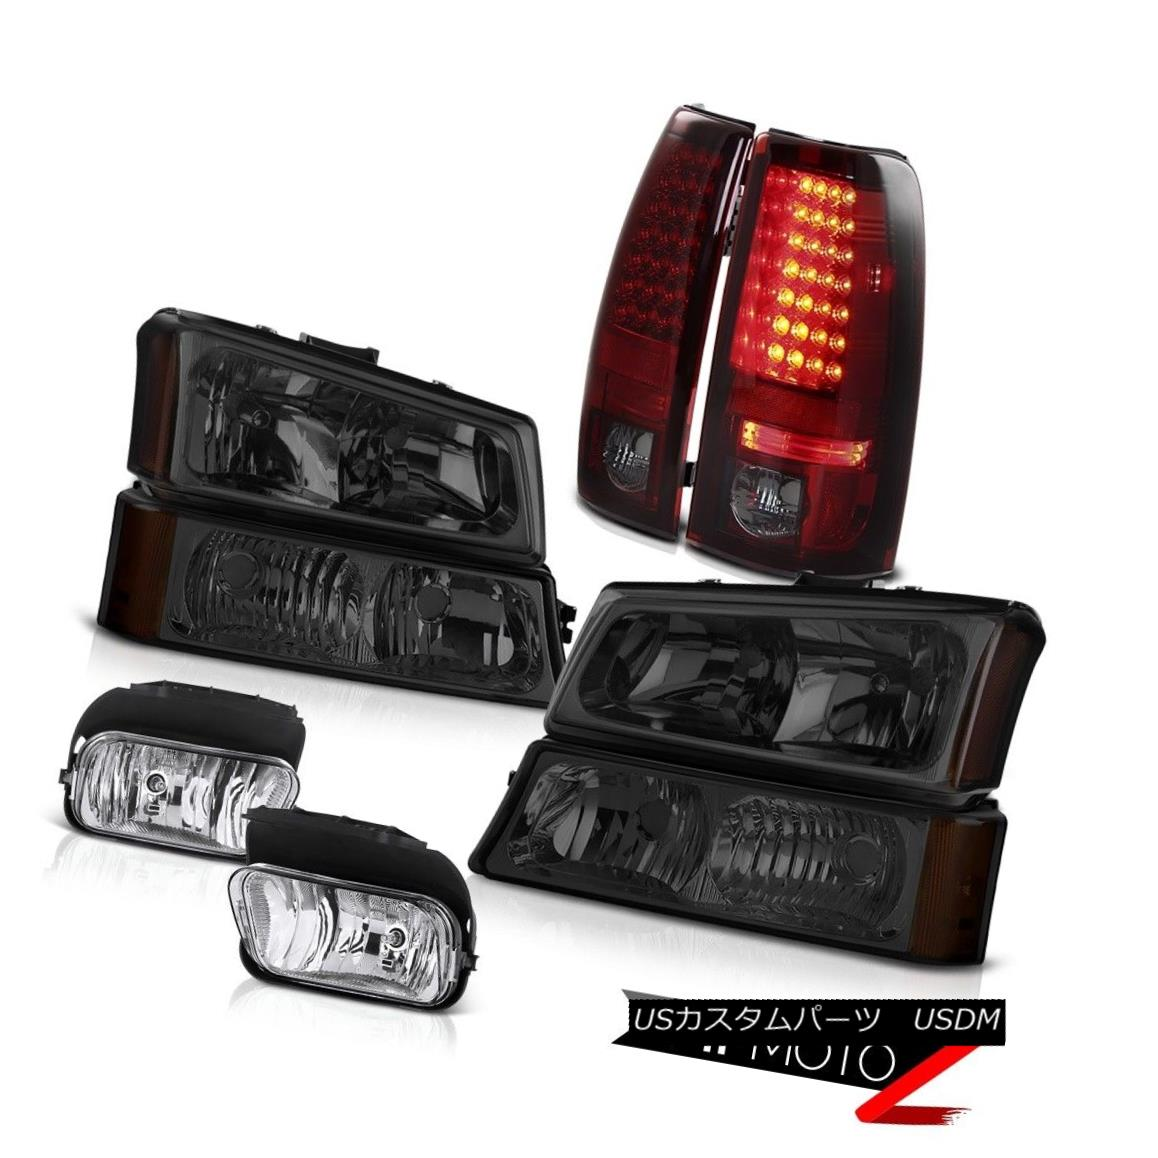 ヘッドライト 2003-2006 Silverado LT Smoke Headlight LEFT RIGHT Red LED Tail Light Driving Fog 2003-2006 Silverado LT煙ヘッドライトLEFT RIGHT赤色LEDテールライトドライビングフォグ